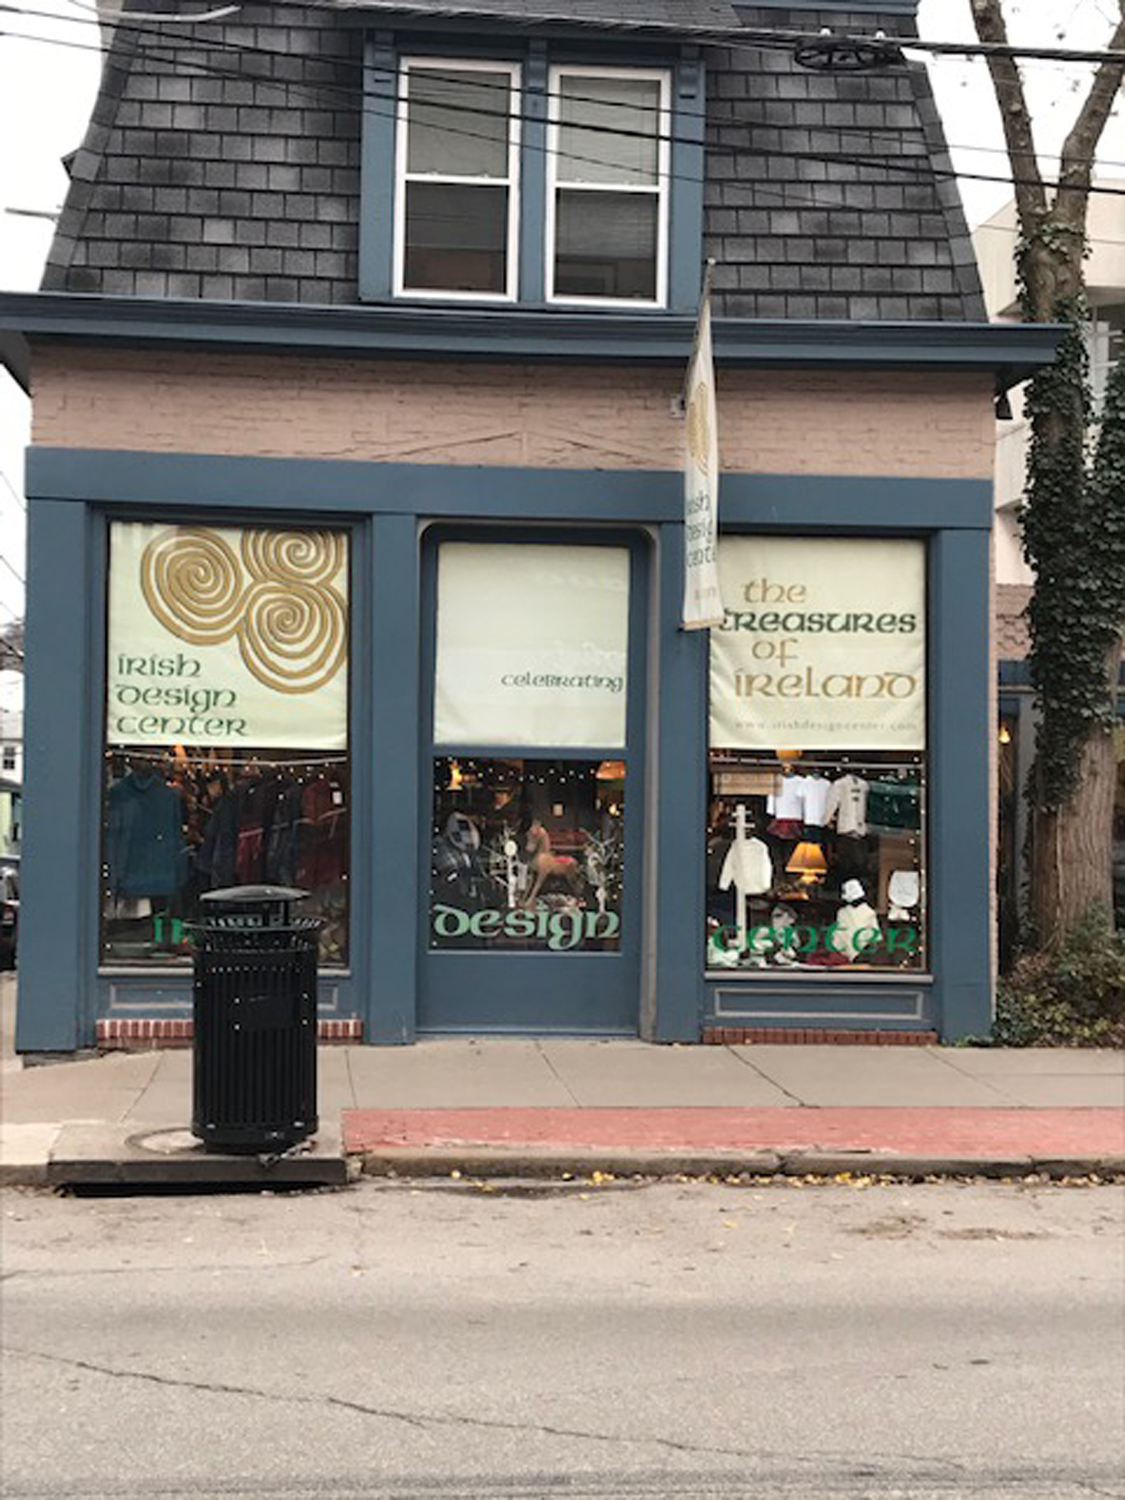 Irish Design Center is located on S. Craig St. in Oakland.